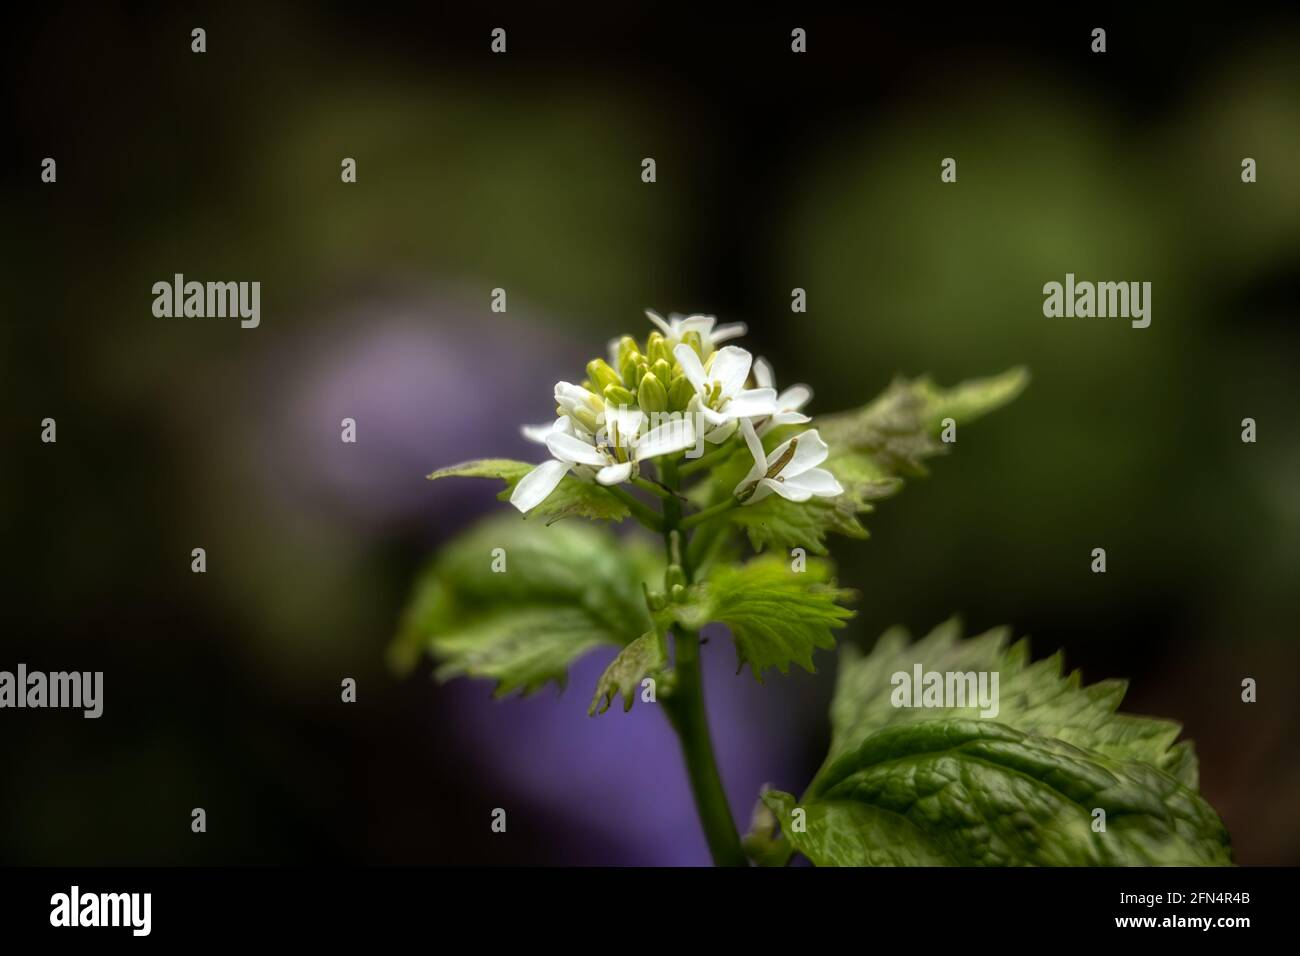 Closeup of the flowers of Garlic mustard, Alliaria petiolata, in the spring in the UK Stock Photo